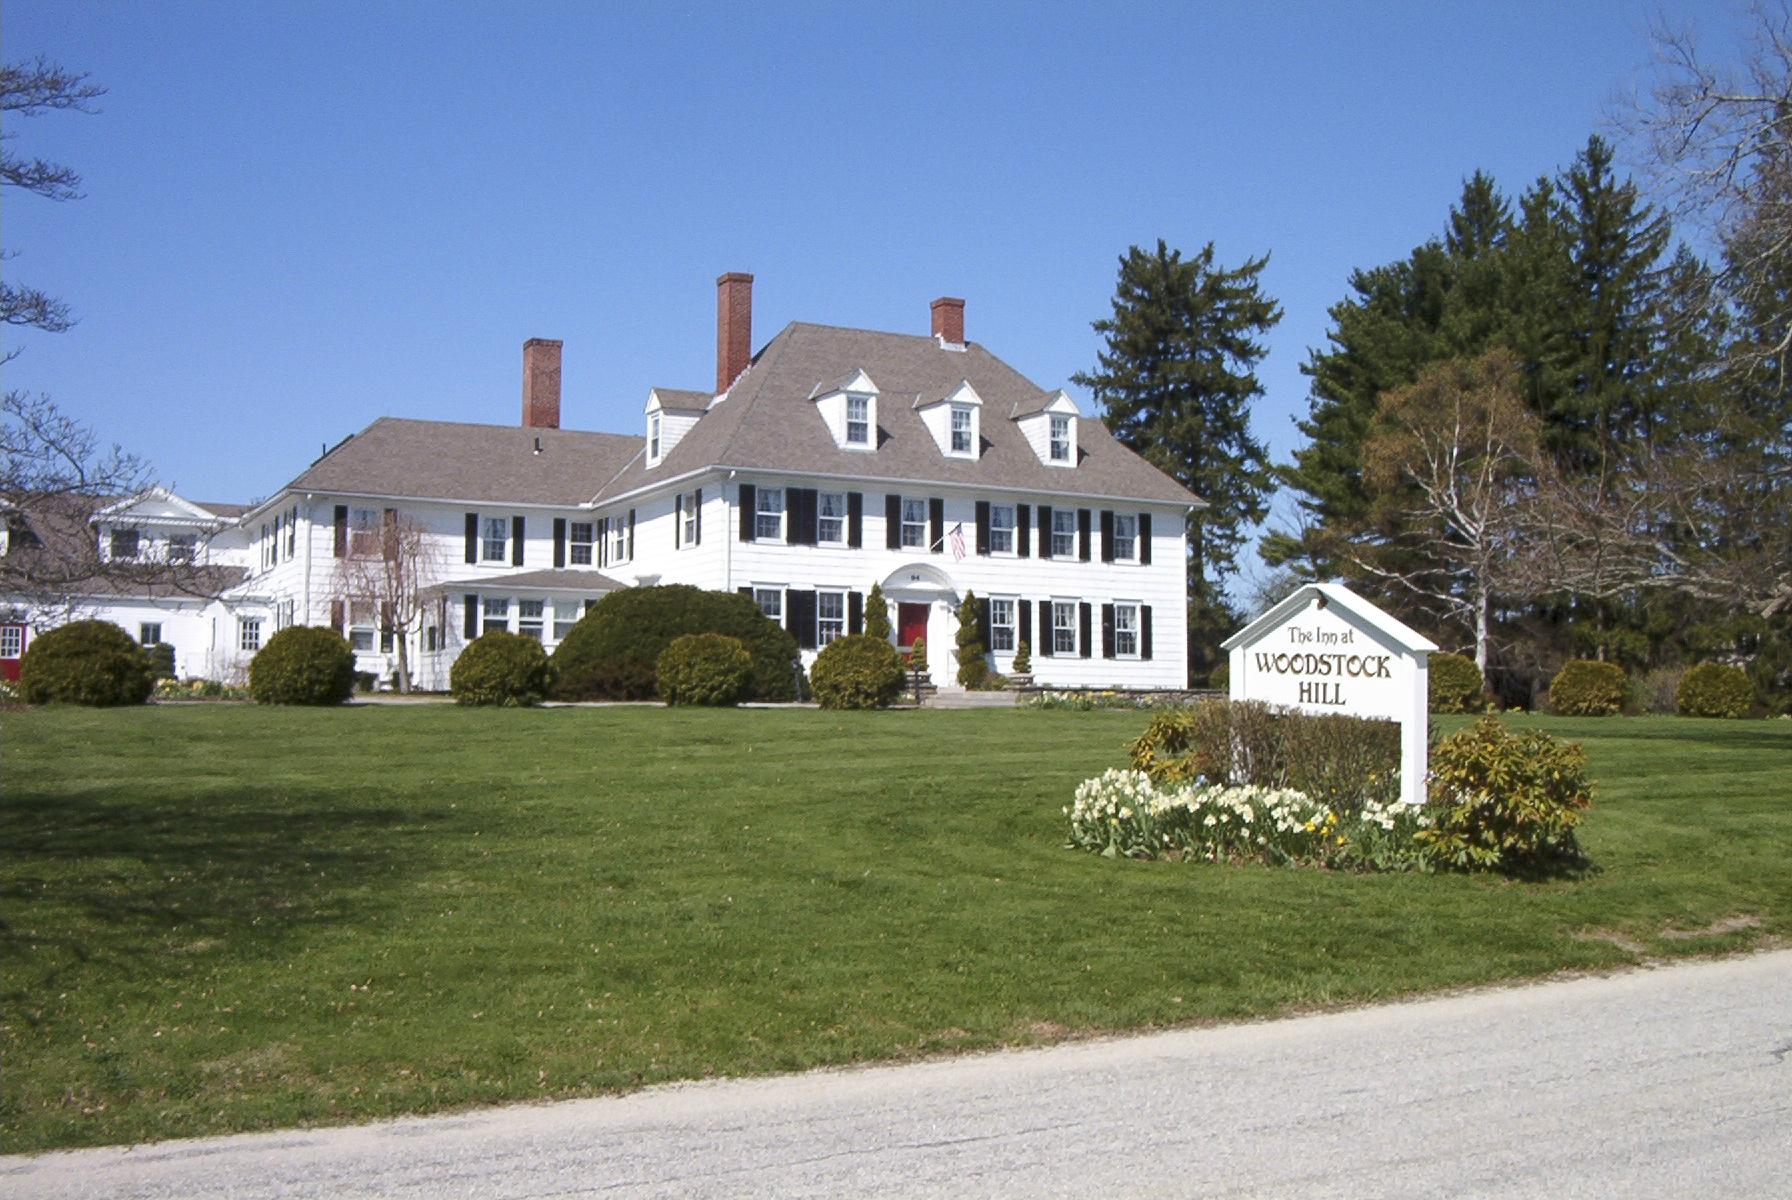 Inn at Woodstock Hill